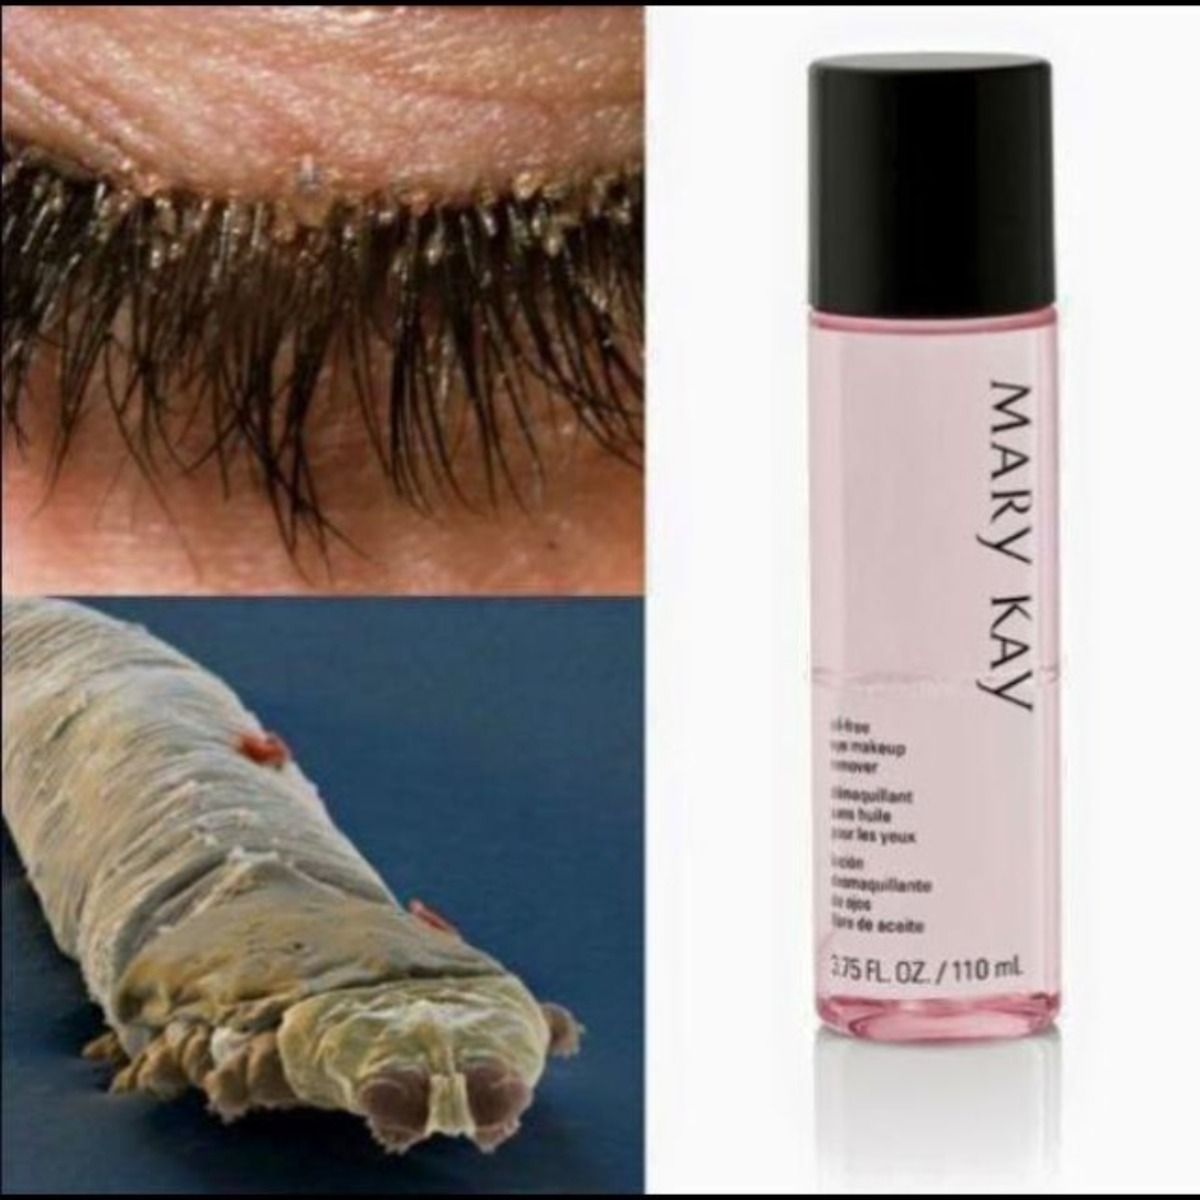 Best Eye Makeup Remover Eye Makeup Remover Best Eye Makeup Remover Mary Kay